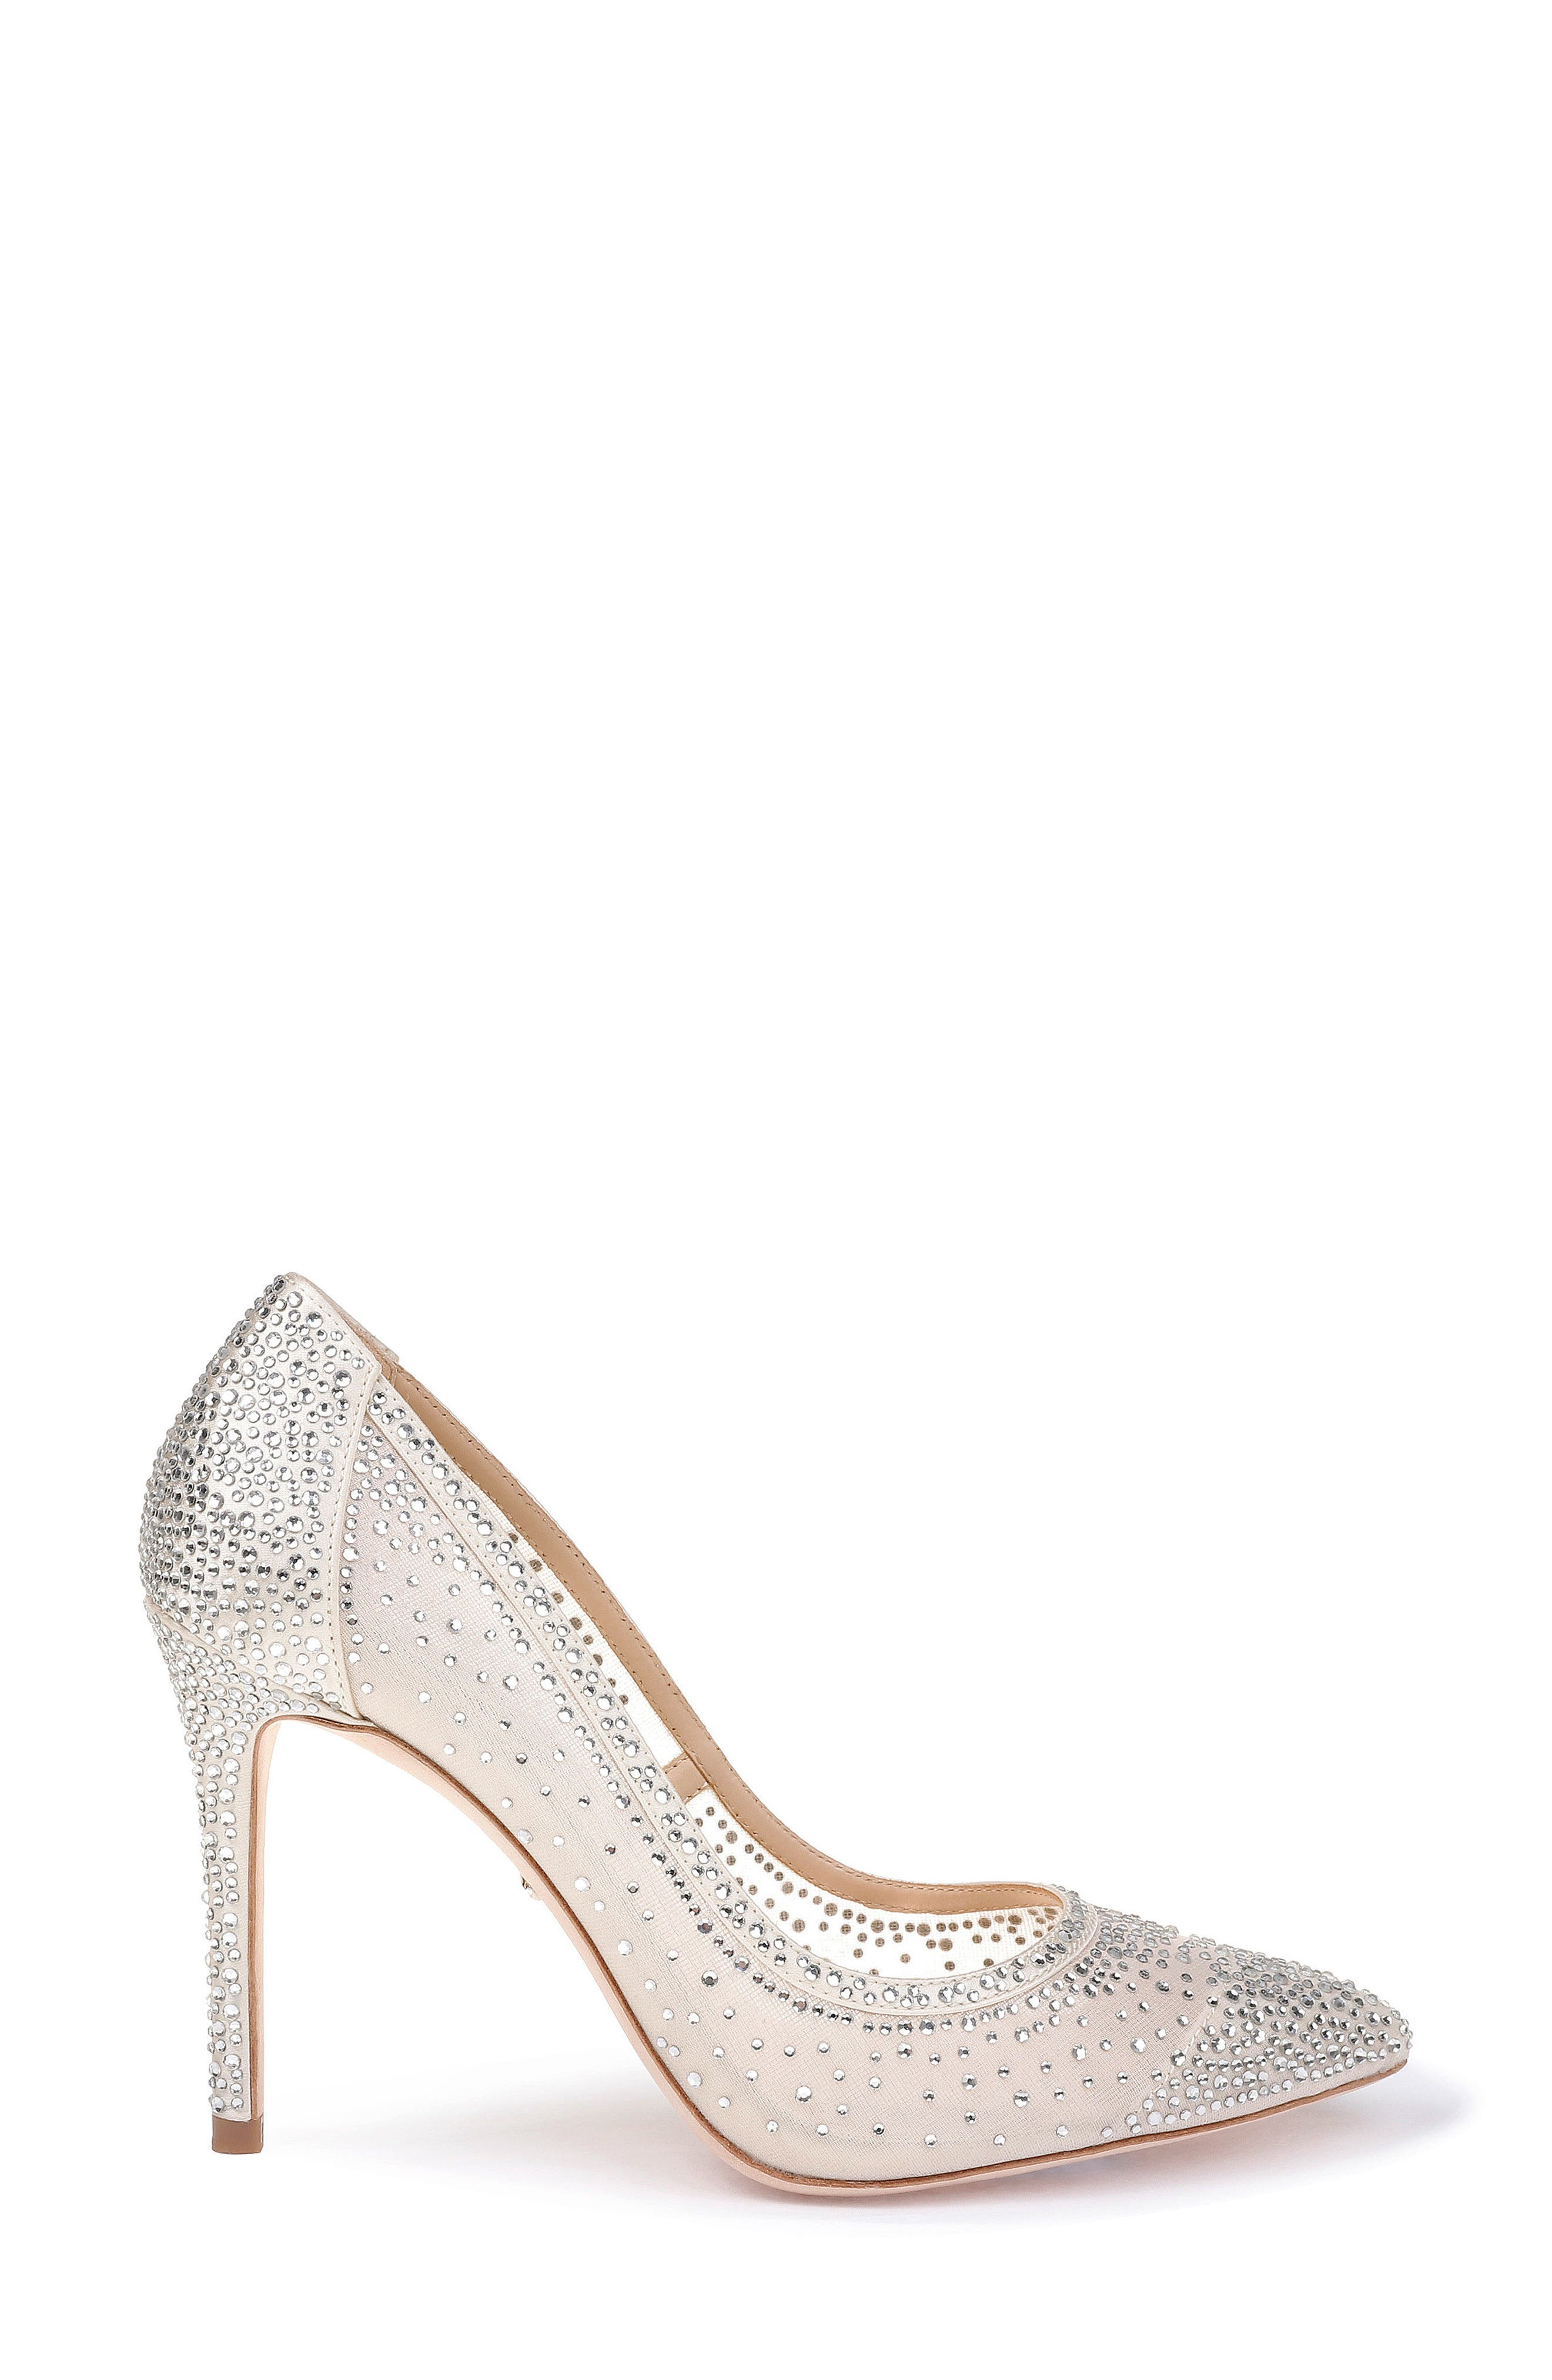 Weslee Pointy Toe Pump,                             Alternate thumbnail 3, color,                             IVORY SATIN